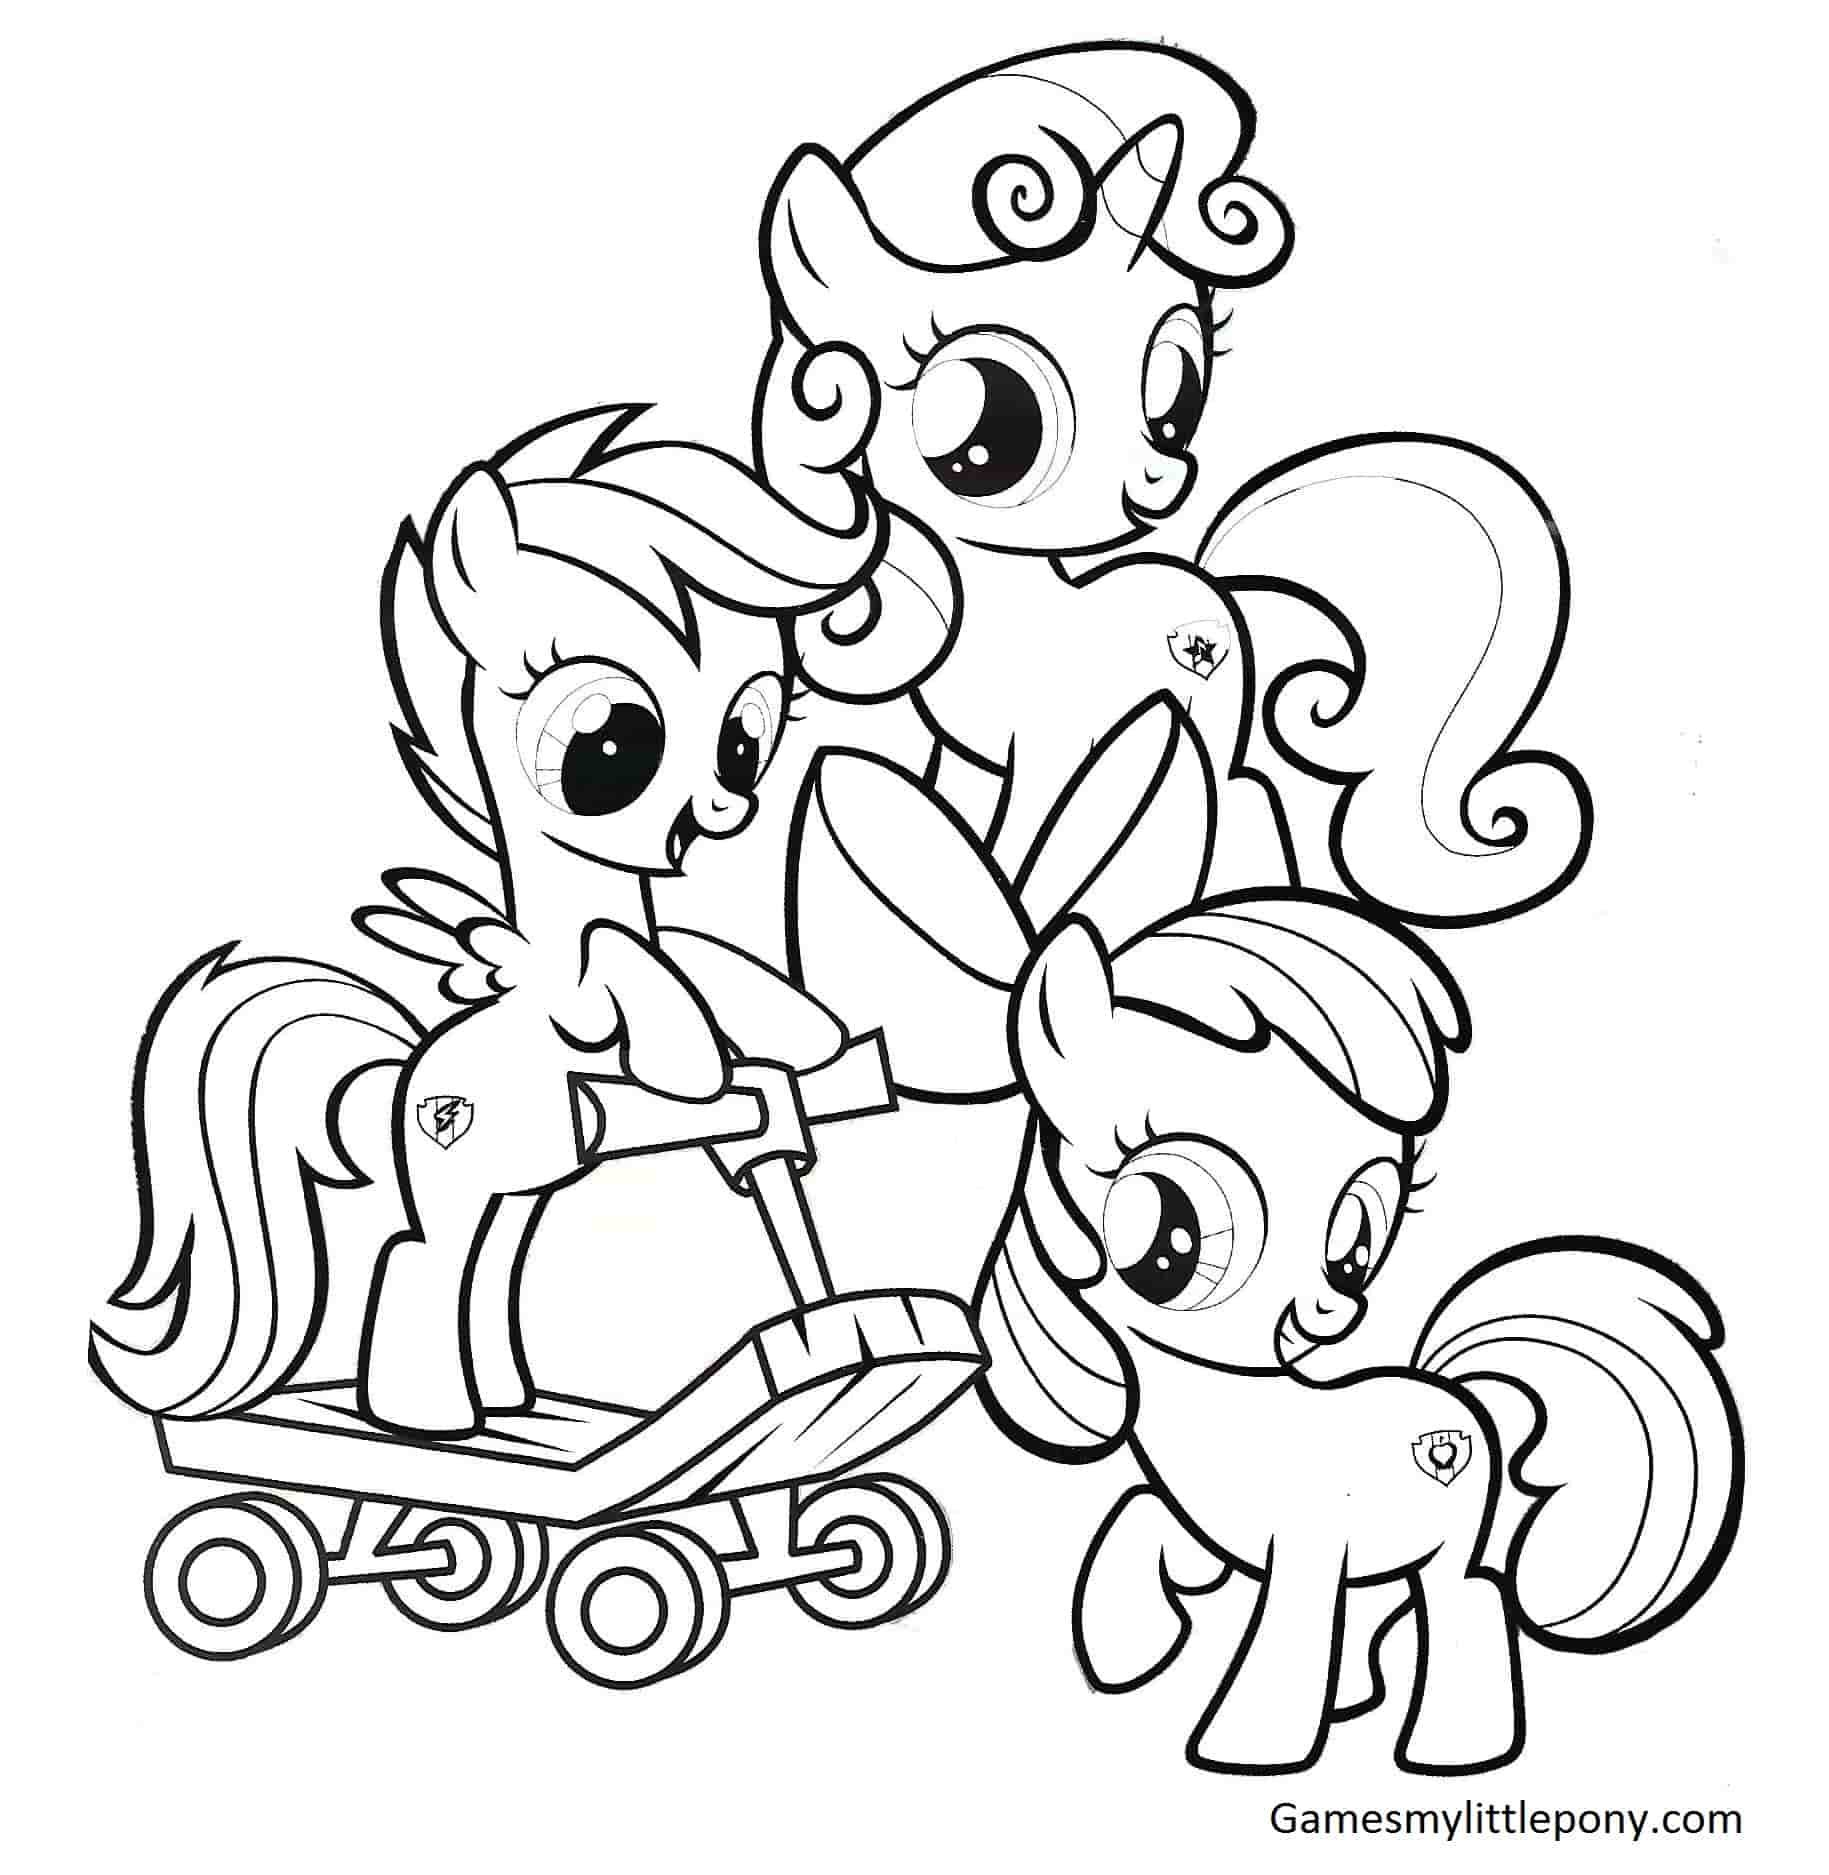 my little pony coloring mlp hero thank you red and oragne quick drying paint razzmataz coloring pages My Little Pony Coloring Page